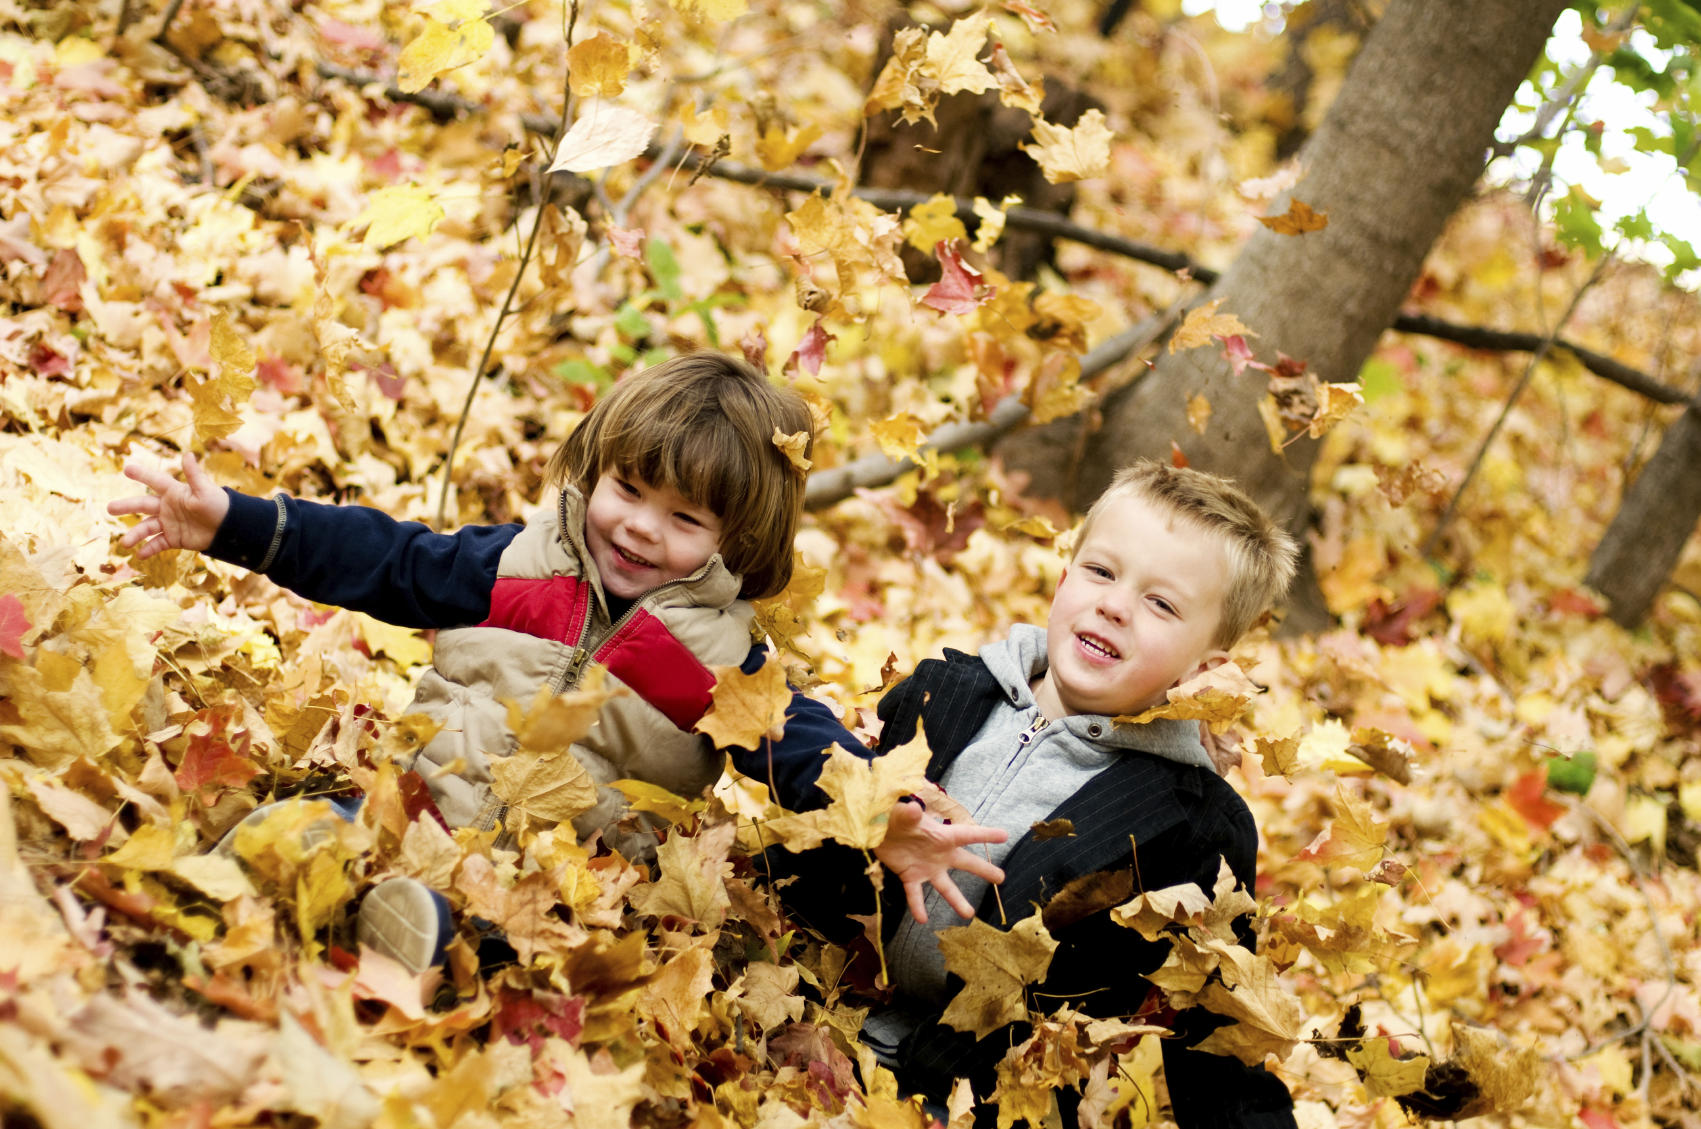 A Crafty Autumn Leaf Project for Kids